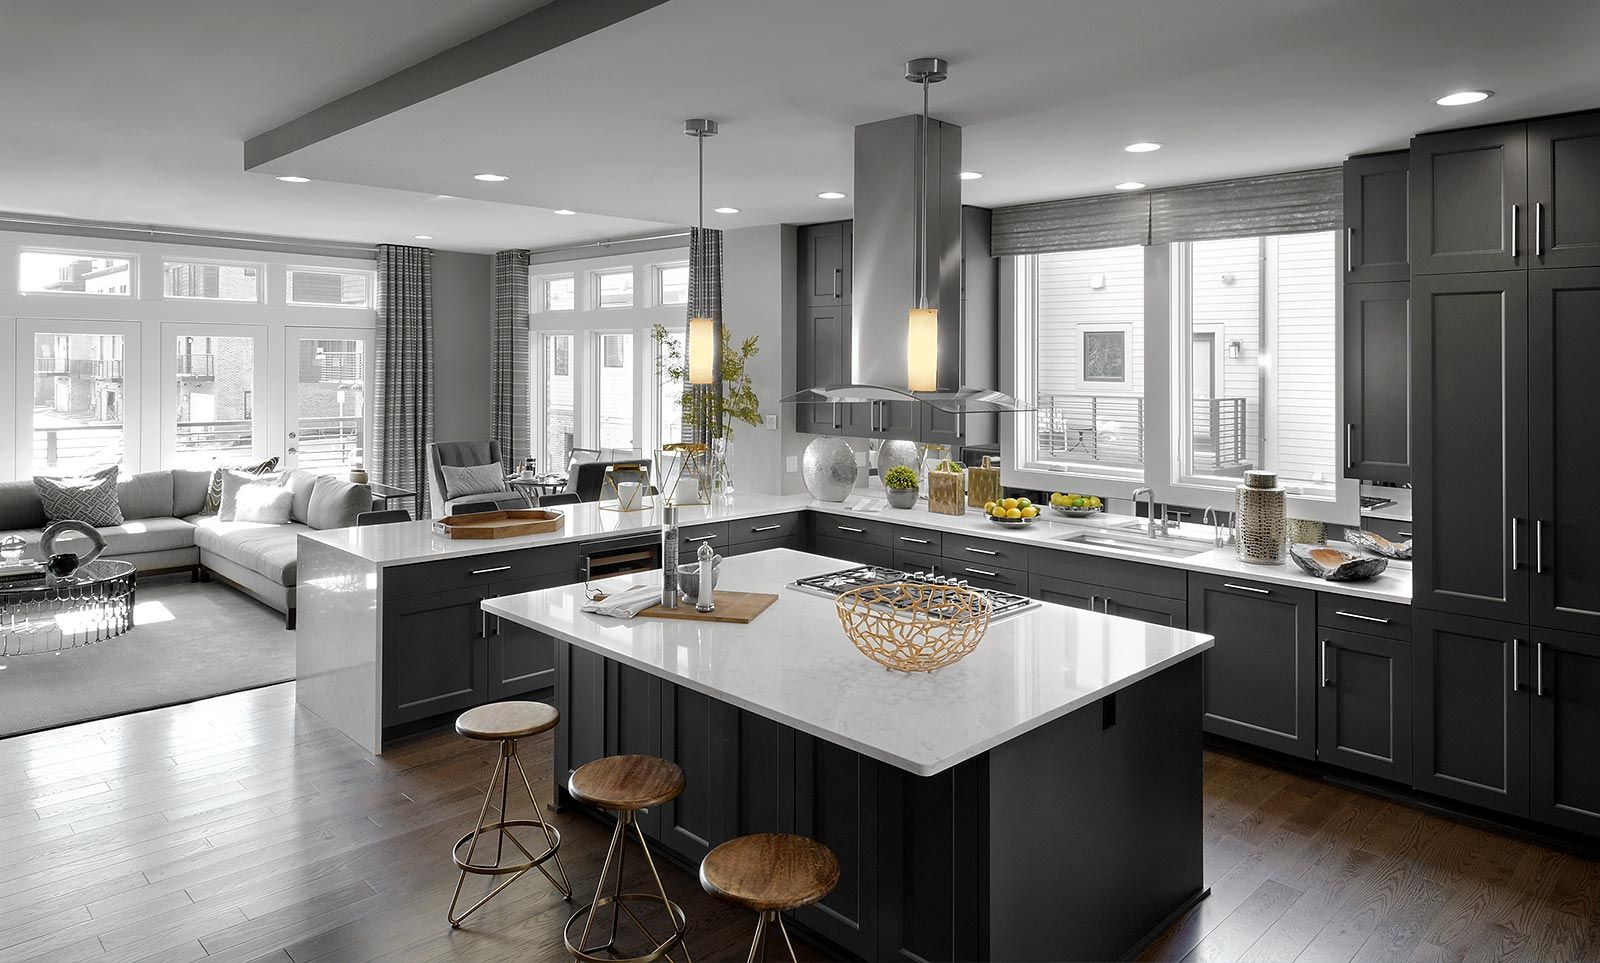 Our Cameron Model At Our New Grosvenor Heights Neighborhood In Bethesda, MD  Features This Fantastic, Spacious Kitchen Built For Any Special Occasion.